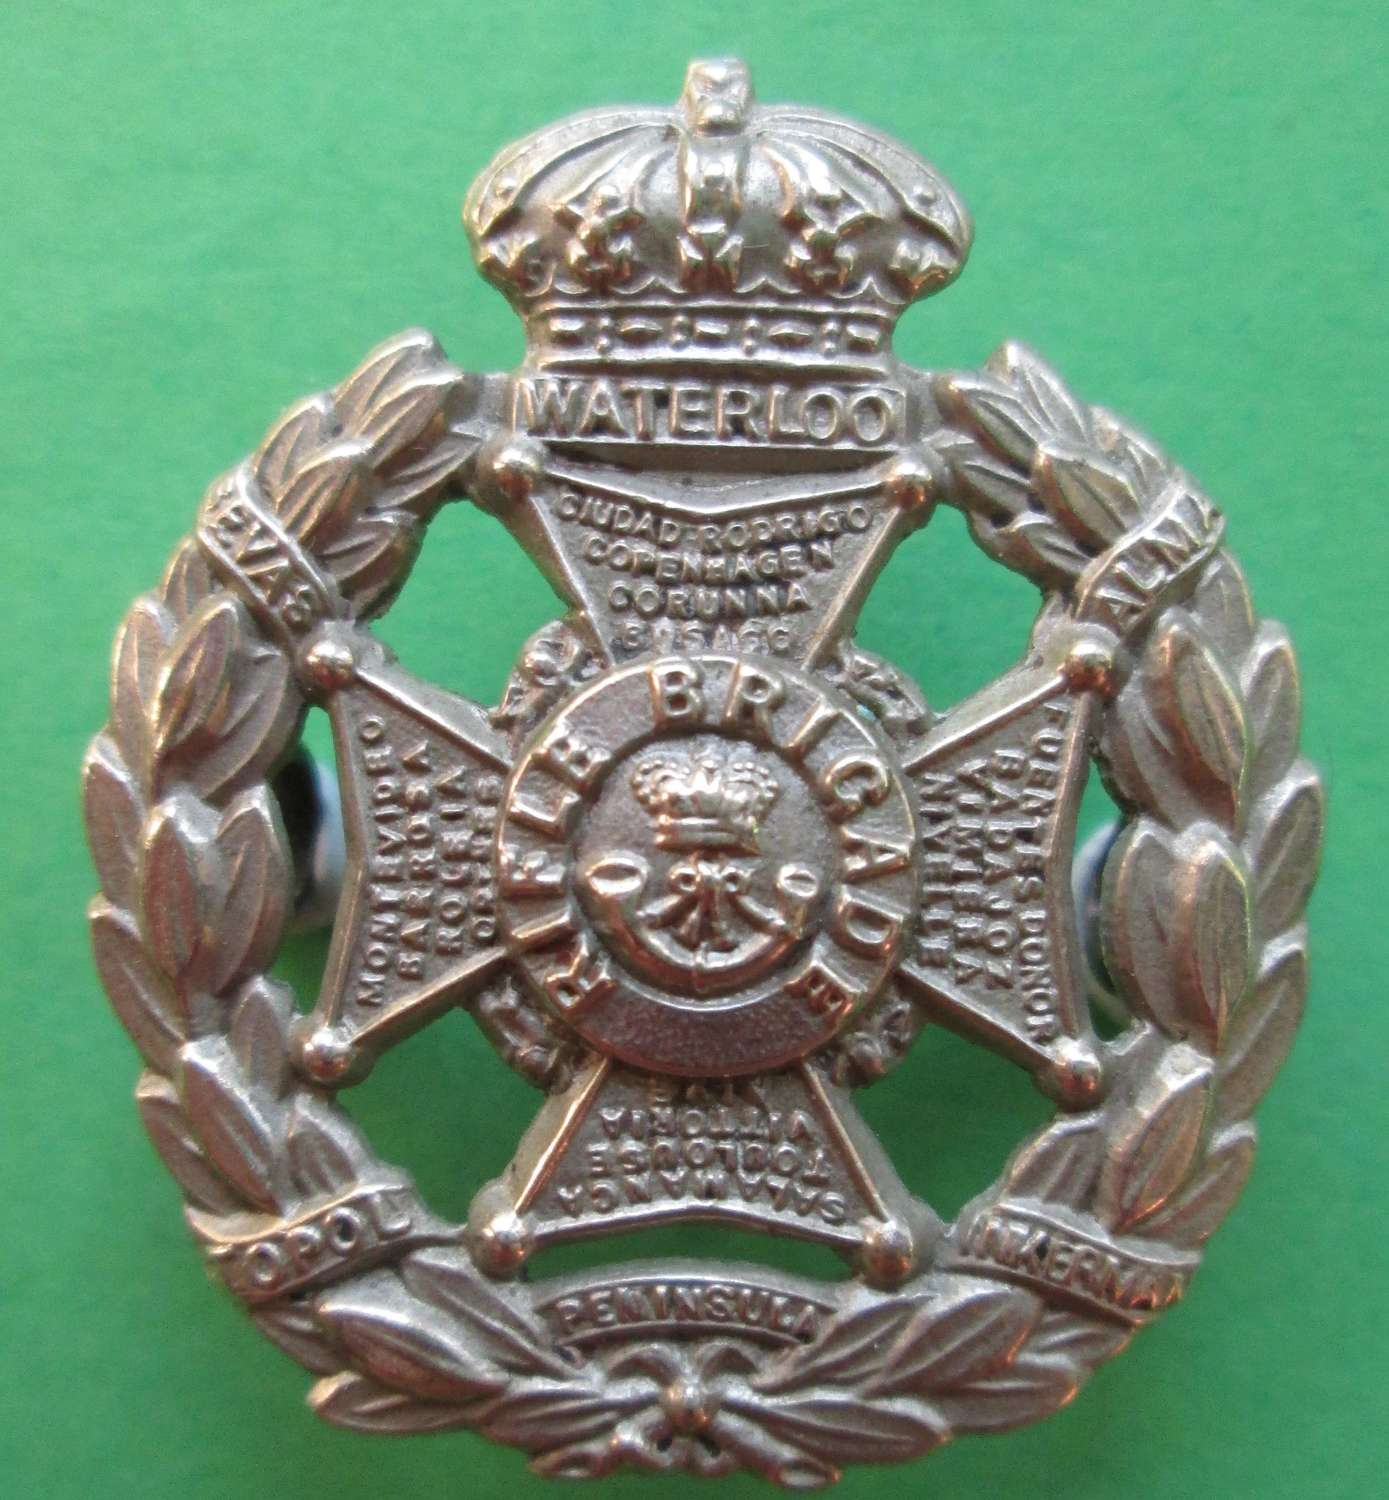 A VICTORIAN RIFLE BRIGADE OTHER RANKS WHITE METAL GLENGARRY BADGE